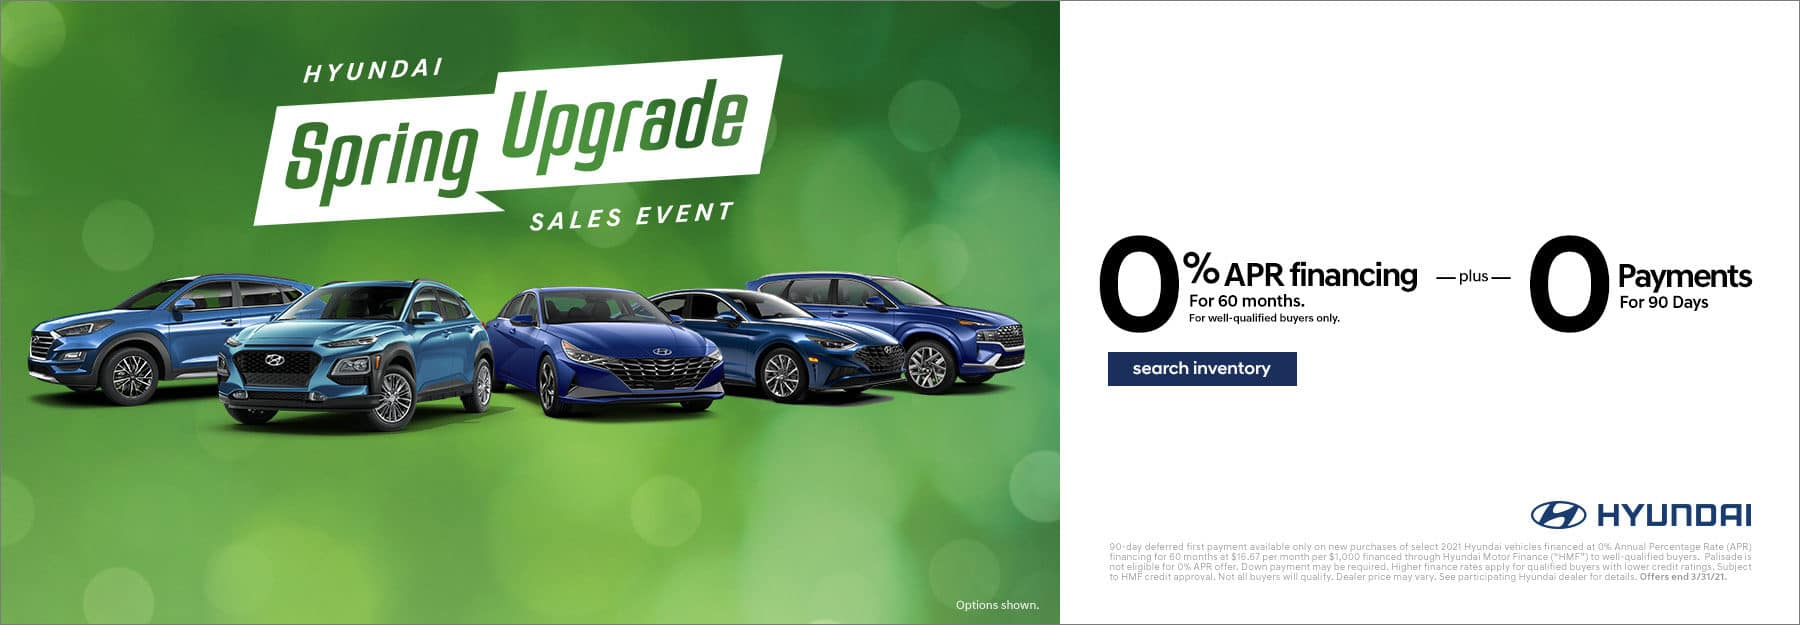 Hyundai Spring Upgrade 0% APR